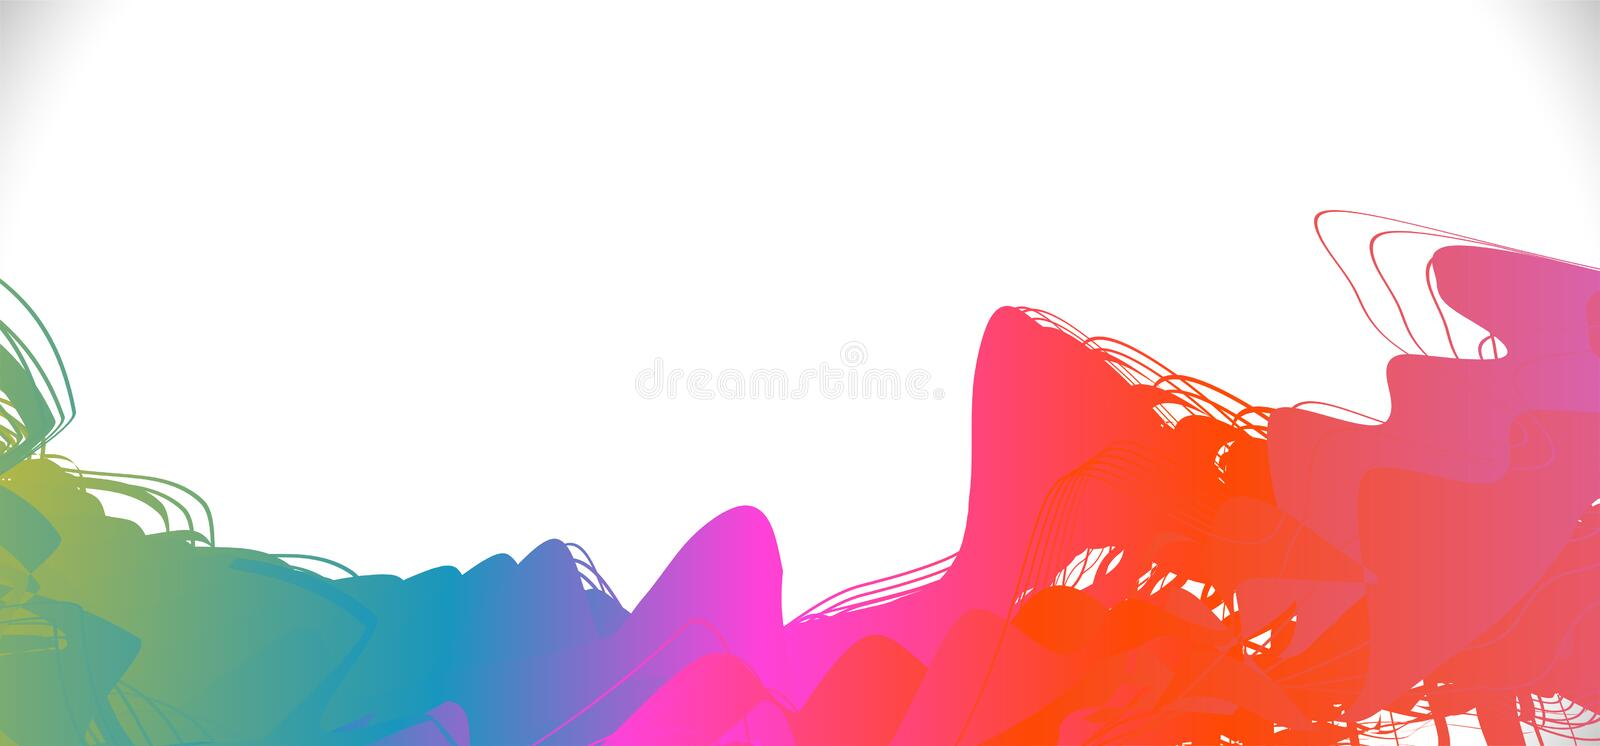 Bstract colorful brush stroke on border and space background, Vector. Illustration vector illustration